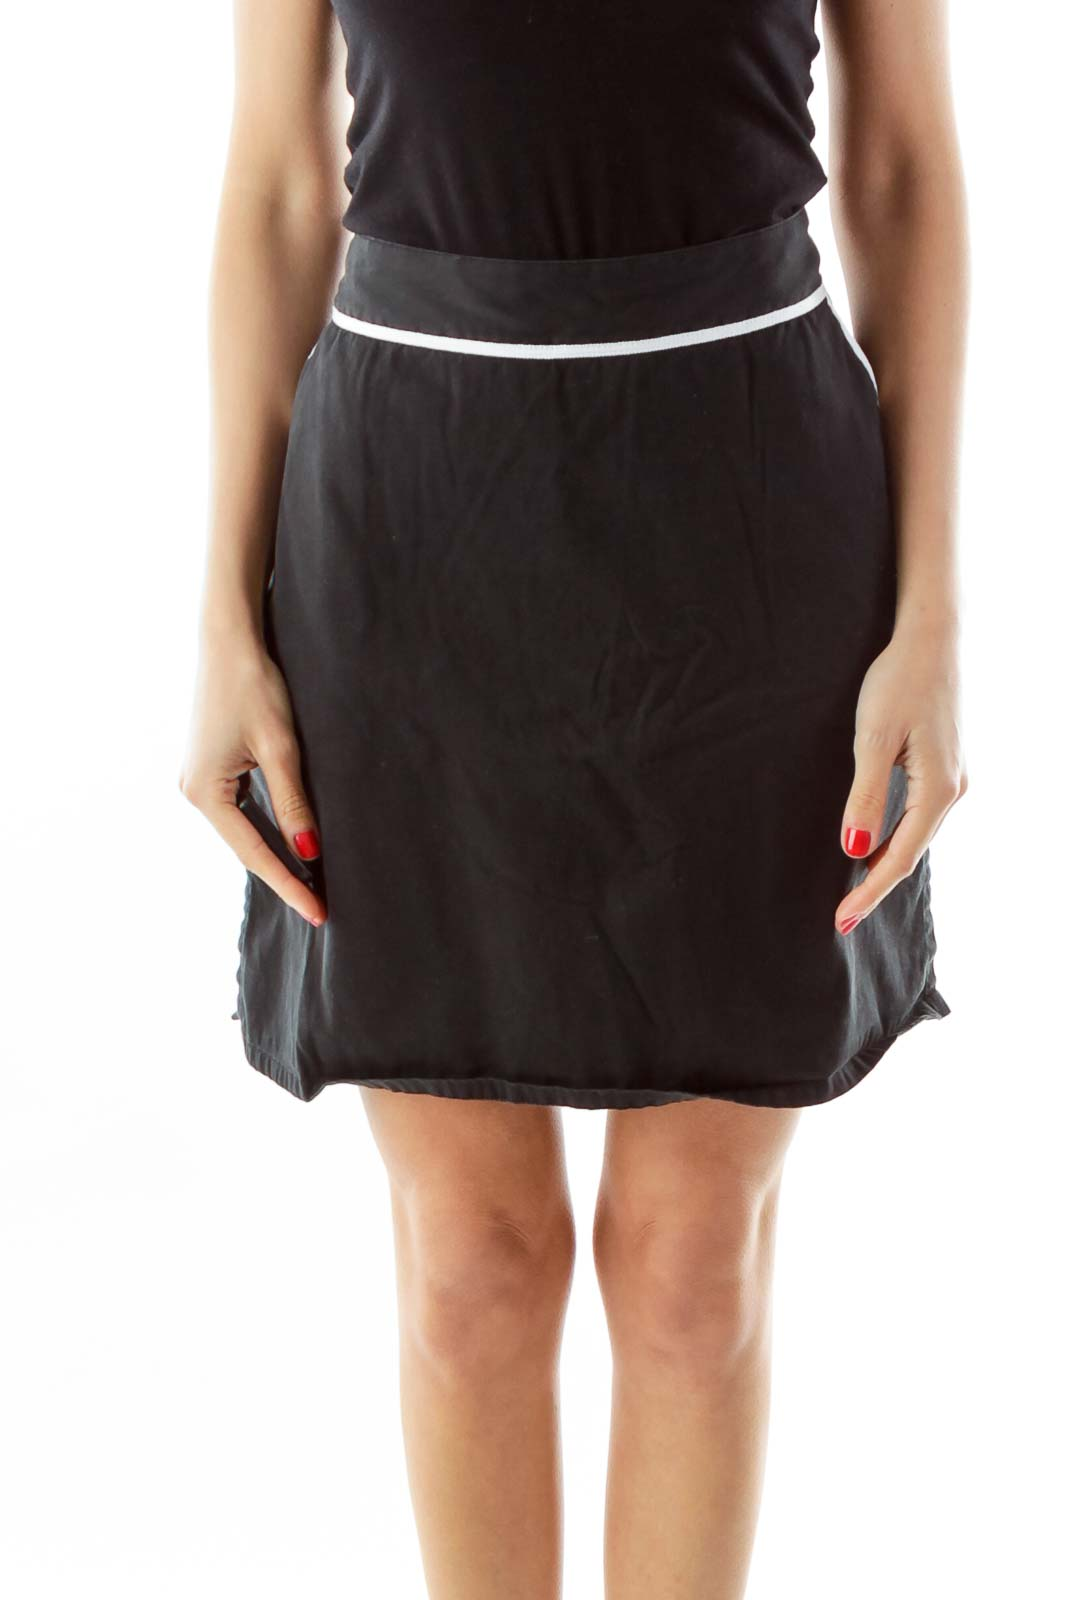 Black Pocketed Skirt w/ White Lines Front